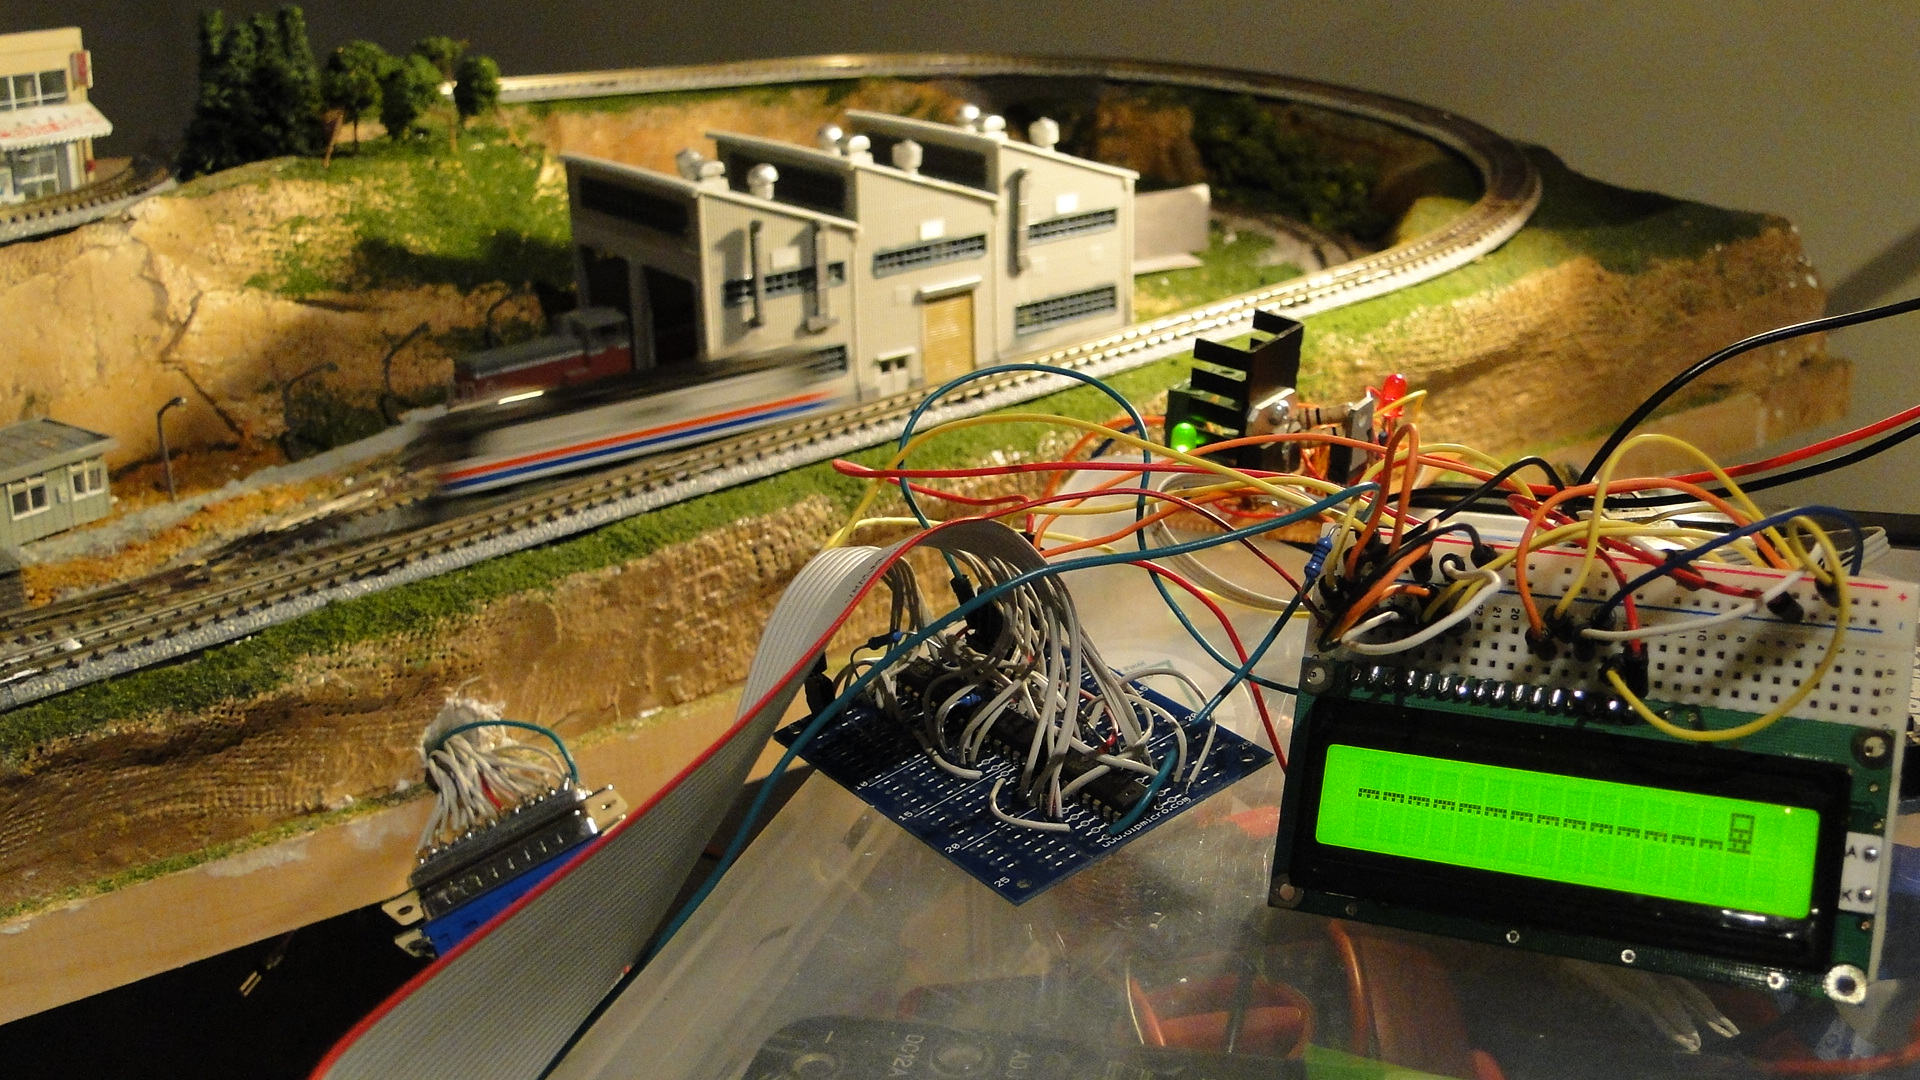 Dcc Track Wiring Moreover Ho Scale Turntable A Model Railway Get Free Image About